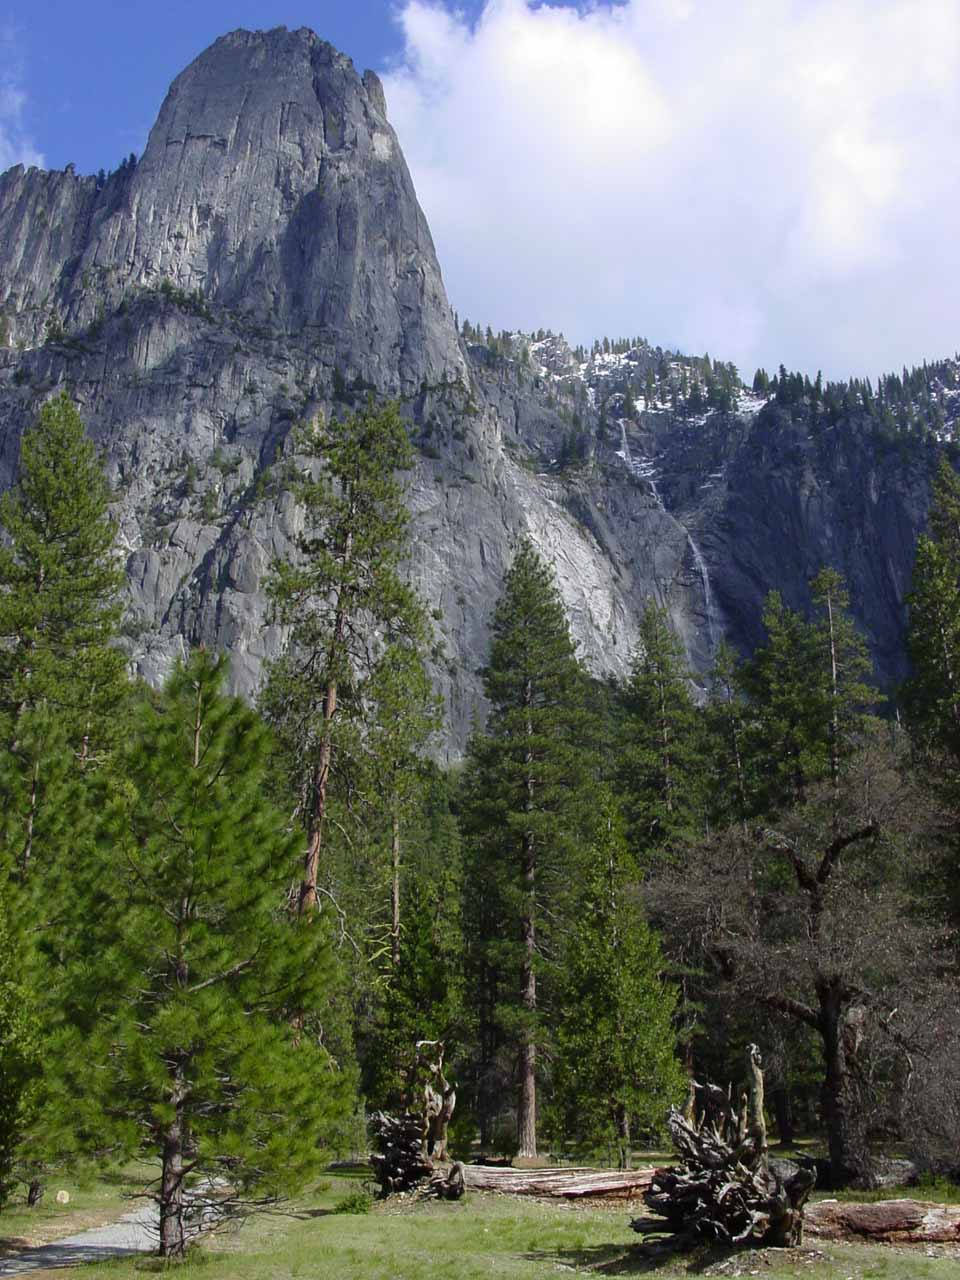 This photo of Sentinel Rock and Sentinel Falls was taken in early May 2003